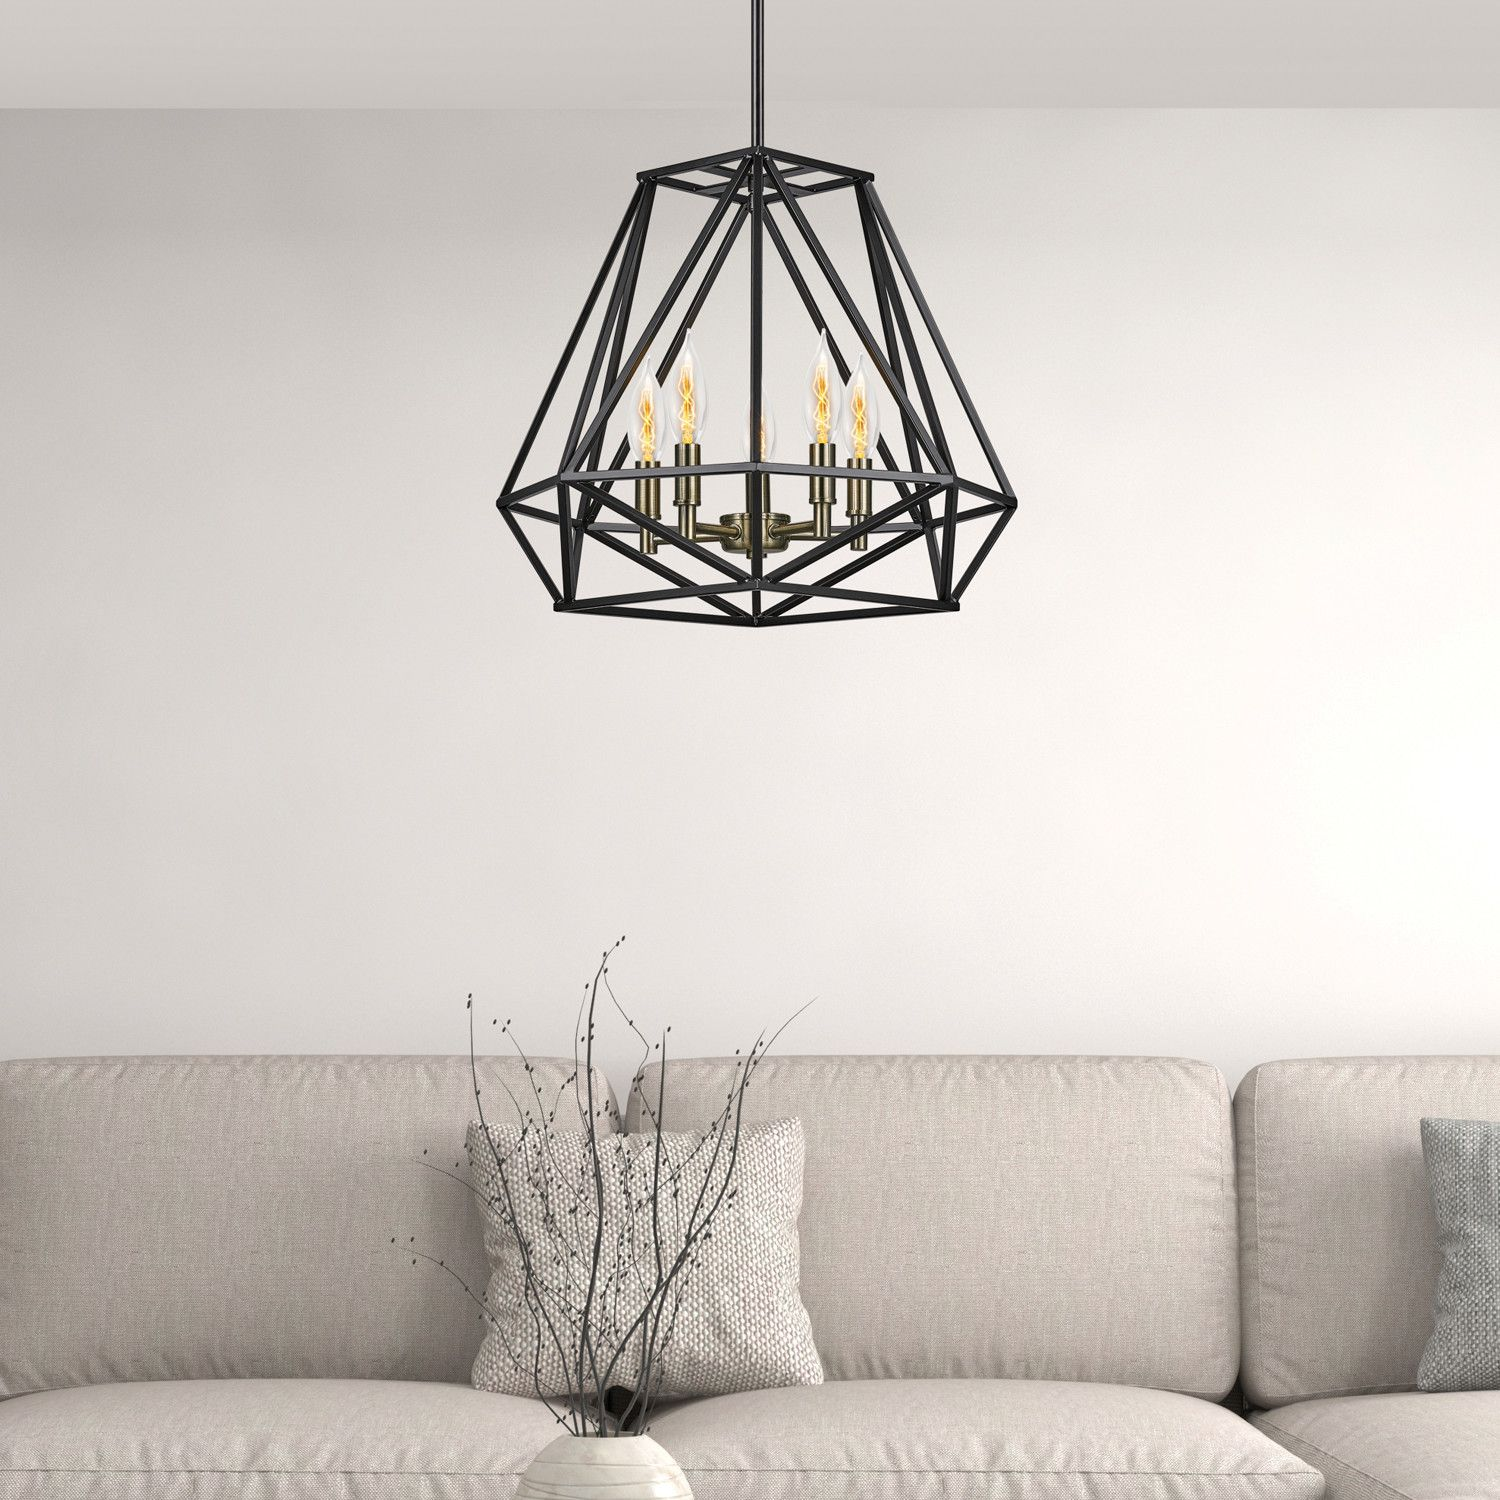 Attirant Check Out Our Sansa Chandelier, A Beautiful 5 Light Geometric Pendant. You  Will Love